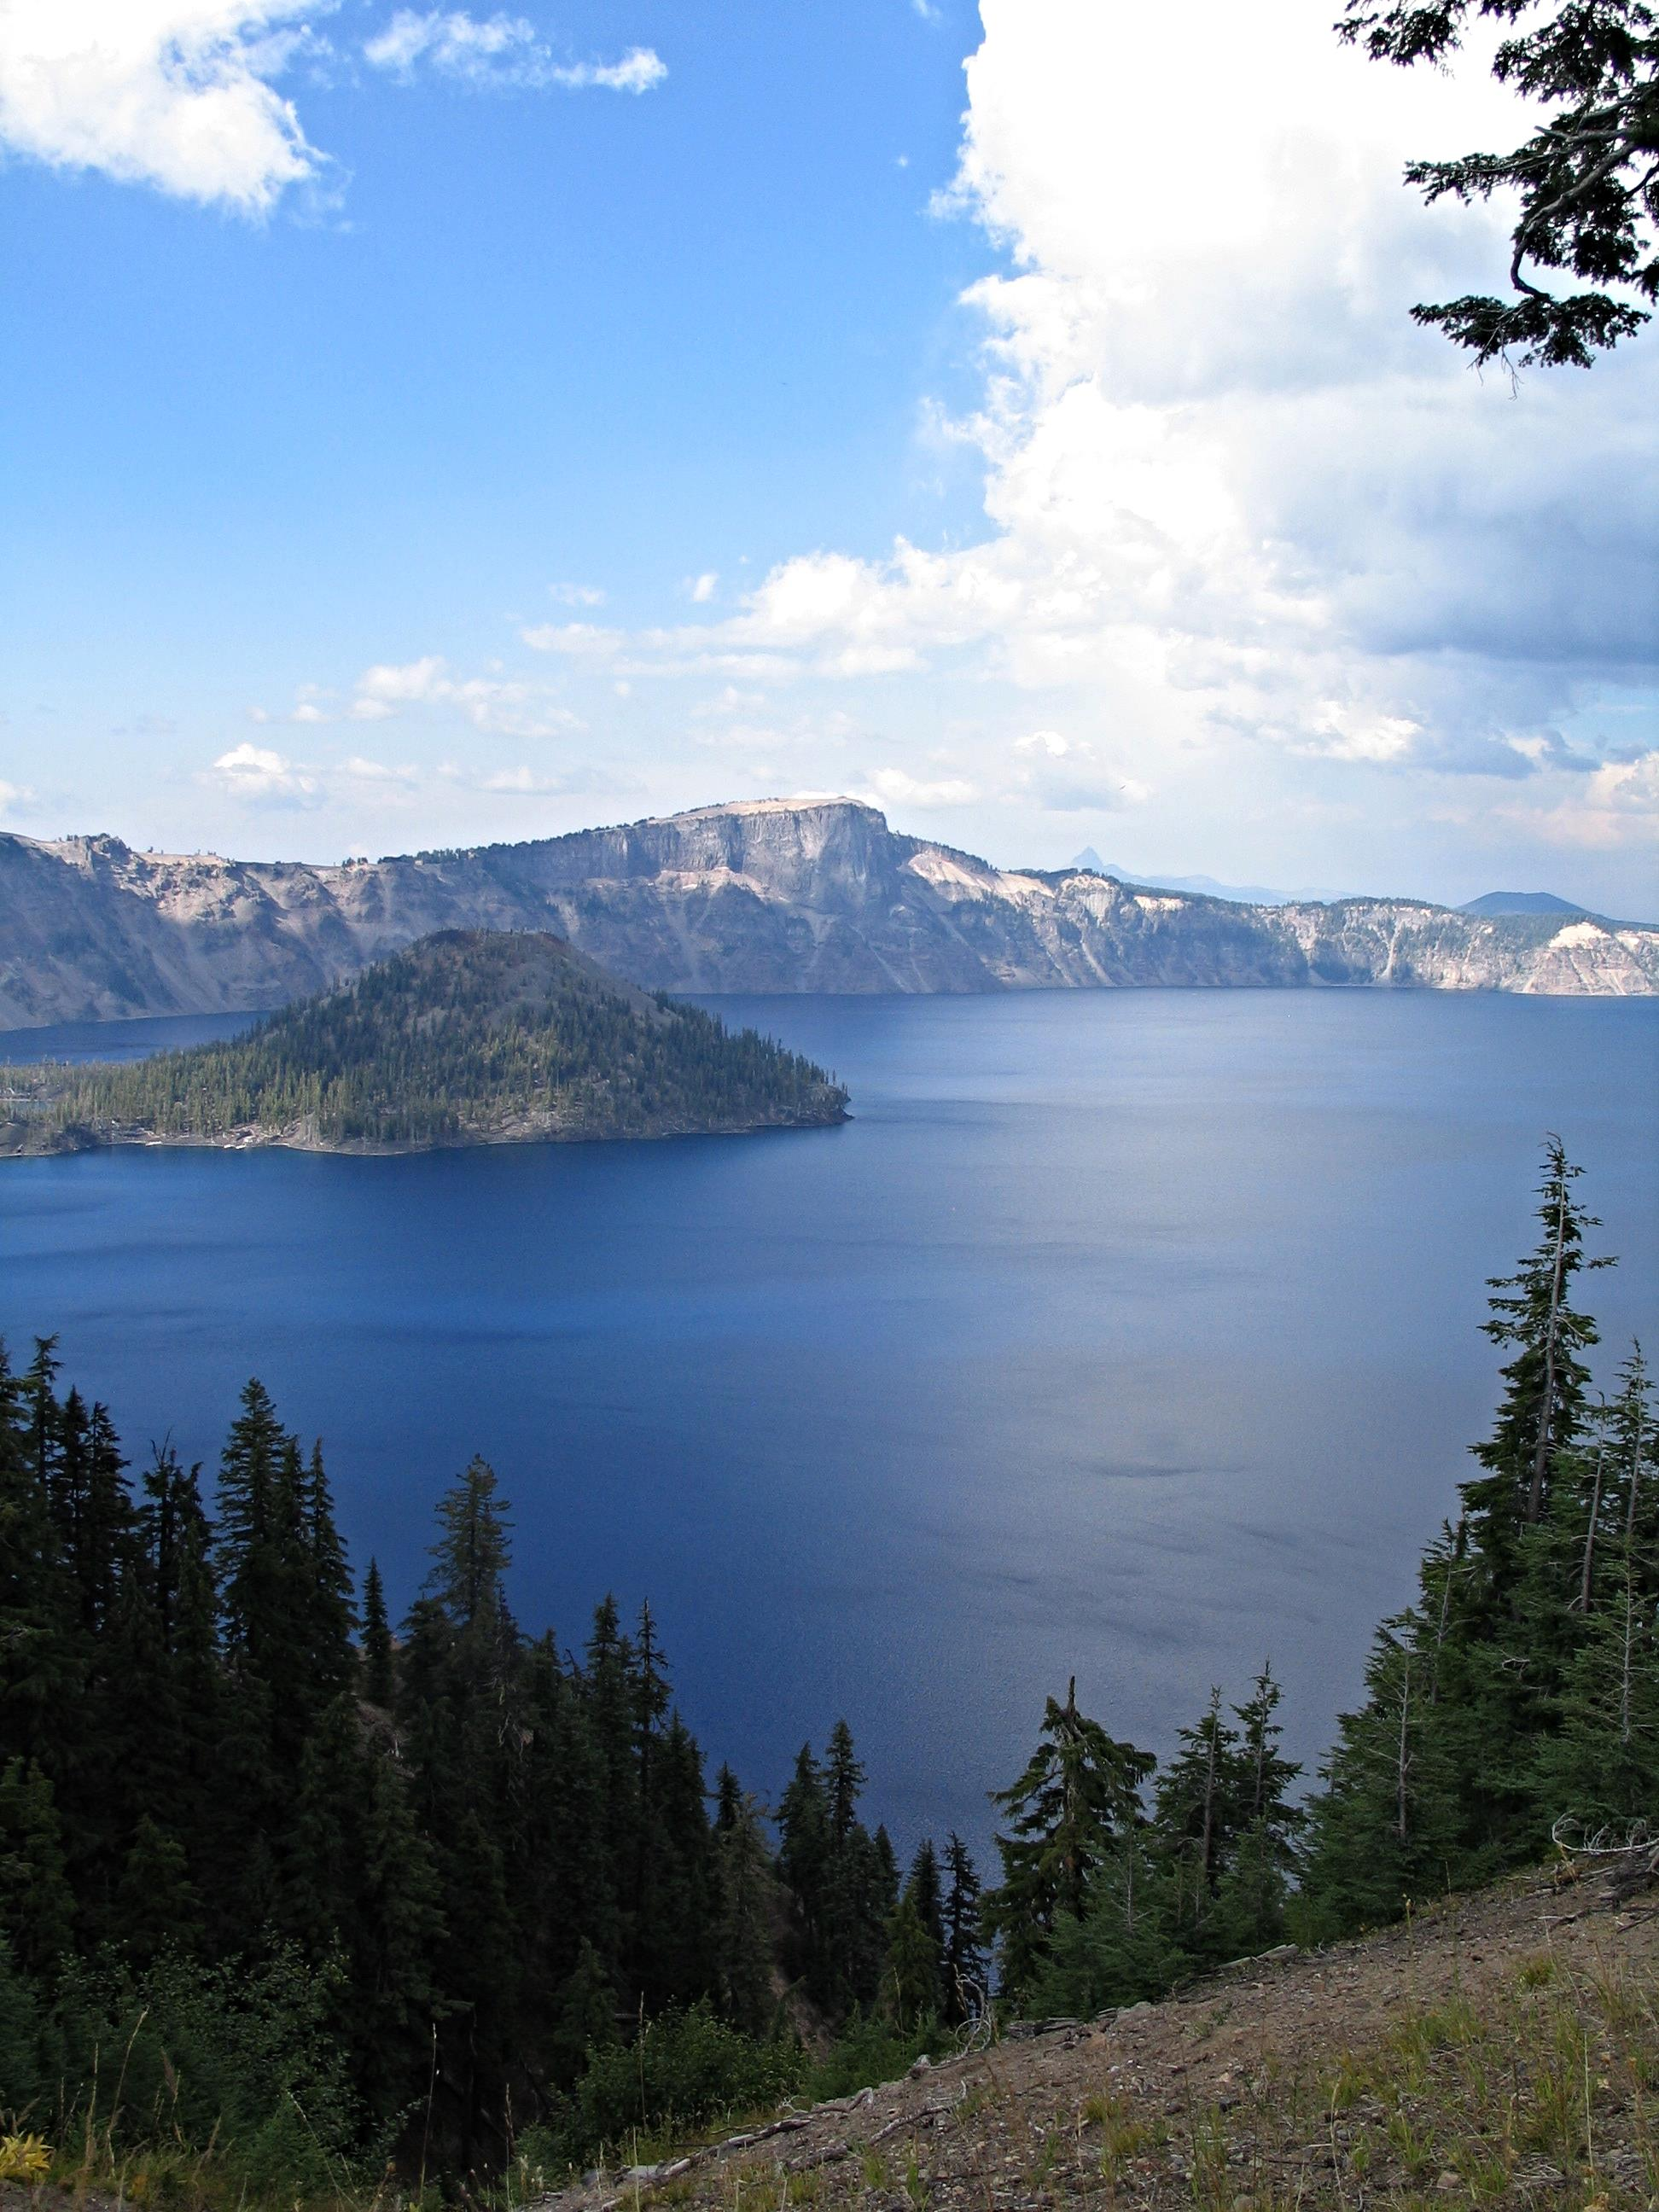 We are so fortunate to live close to the beautiful Crater Lake, once a southern Oregon volcano.